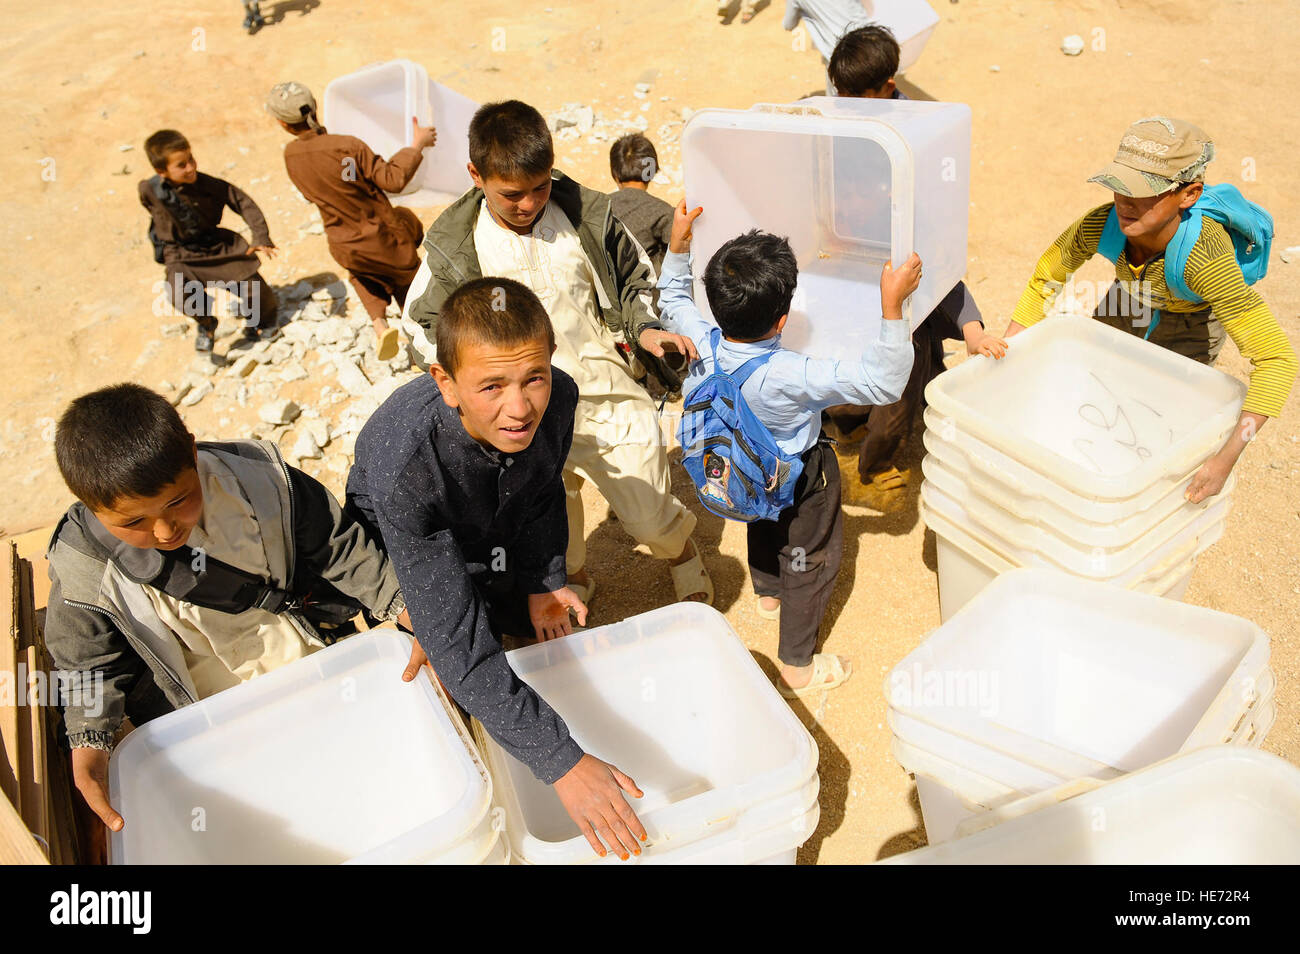 Afghan boys help unload ballot materials from an Mi-17 helicopter in Jaghuri, Afghanistan, Sept. 16, 2010.  The - Stock Image